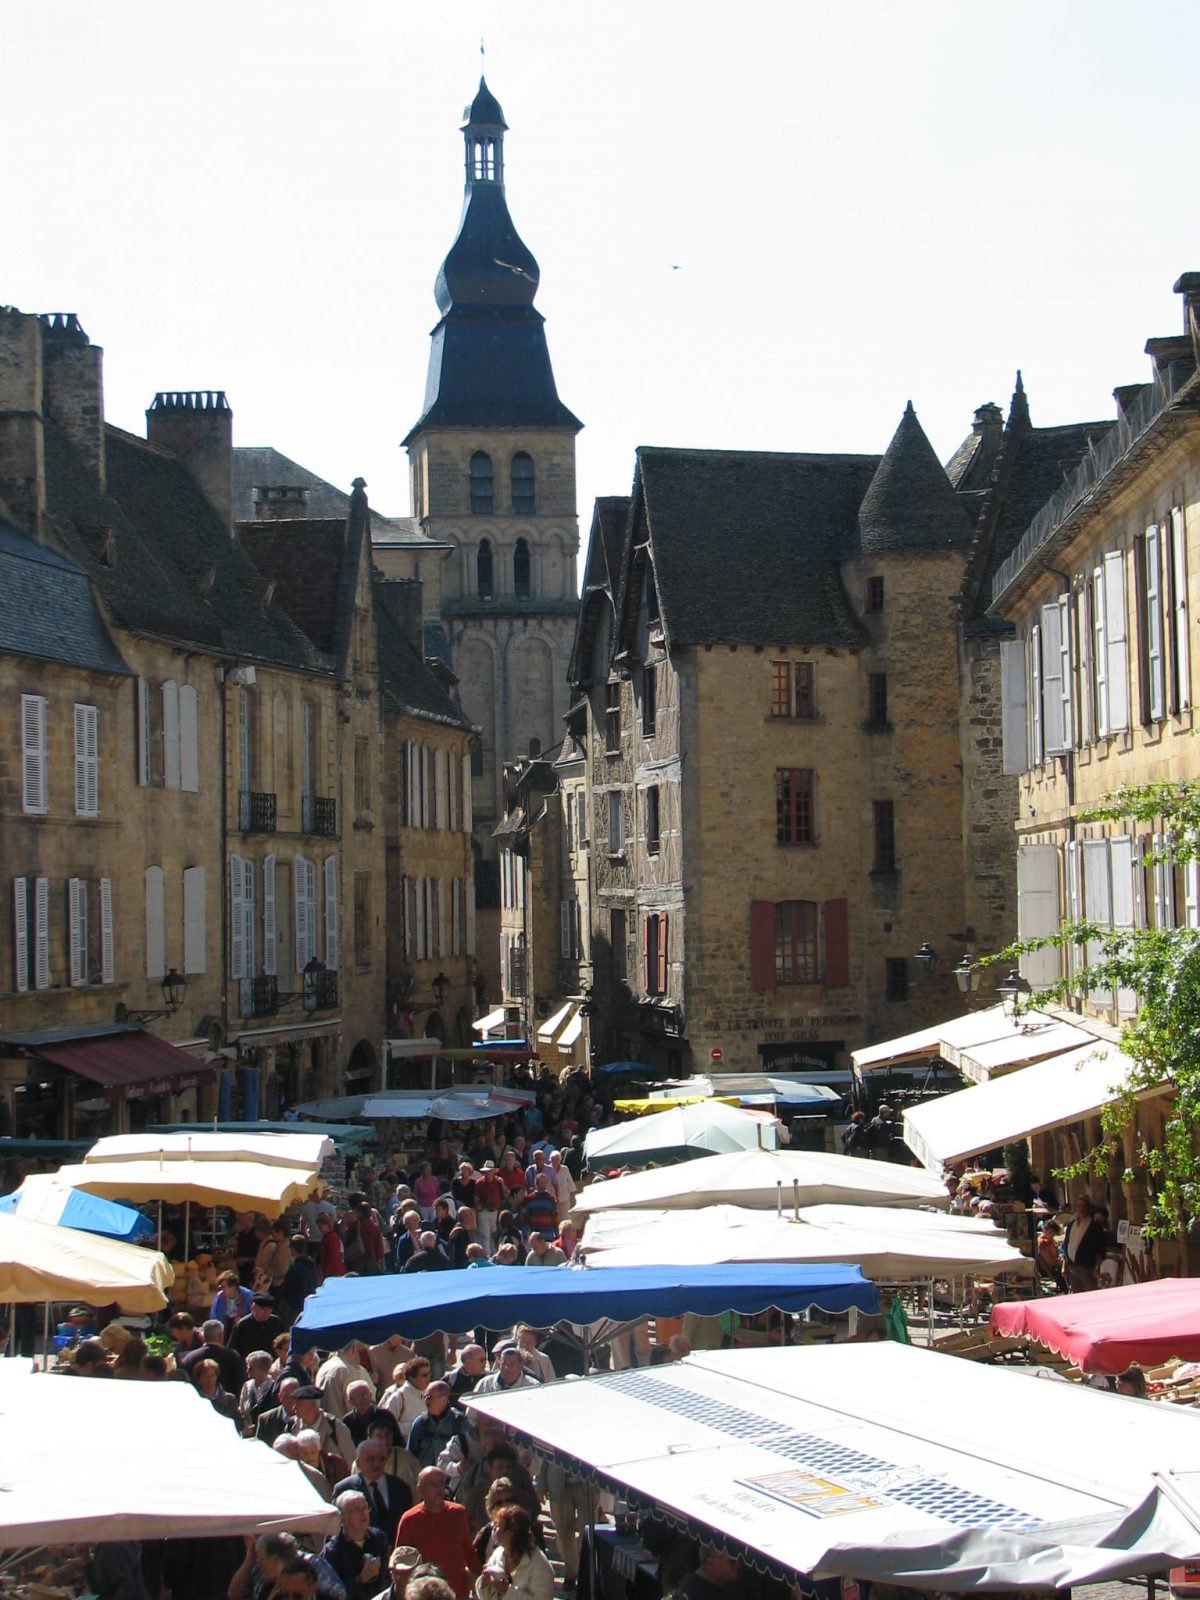 We Offer Quality Holiday Rental Accommodation With Private Swimming Pools,  In The Beautiful Regions Of The Dordogne ...